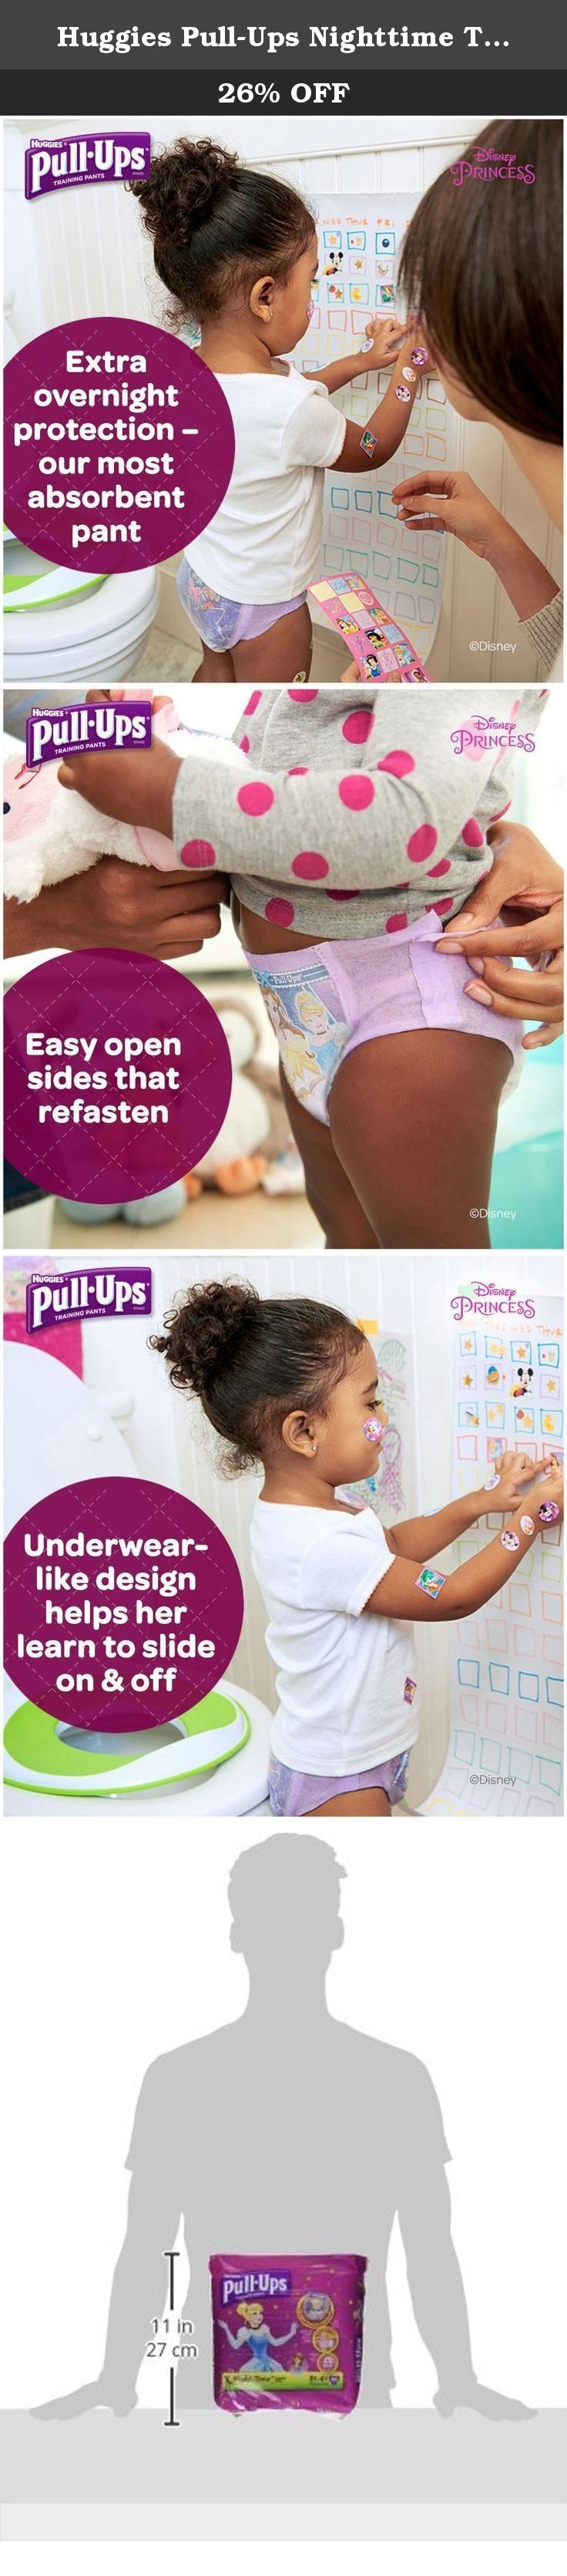 Huggies Pull-Ups Nighttime Training Pants - Girls - 3T-4T - 20 ct. Rest easy, knowing Night*Time Training Pants are as absorbent as the leading diaper, helping keep toddlers dry through the night.Pull-Ups Night*Time Training Pants are the most absorbent training pants, giving mom the confidence to stay consistent with potty training, around the clock.